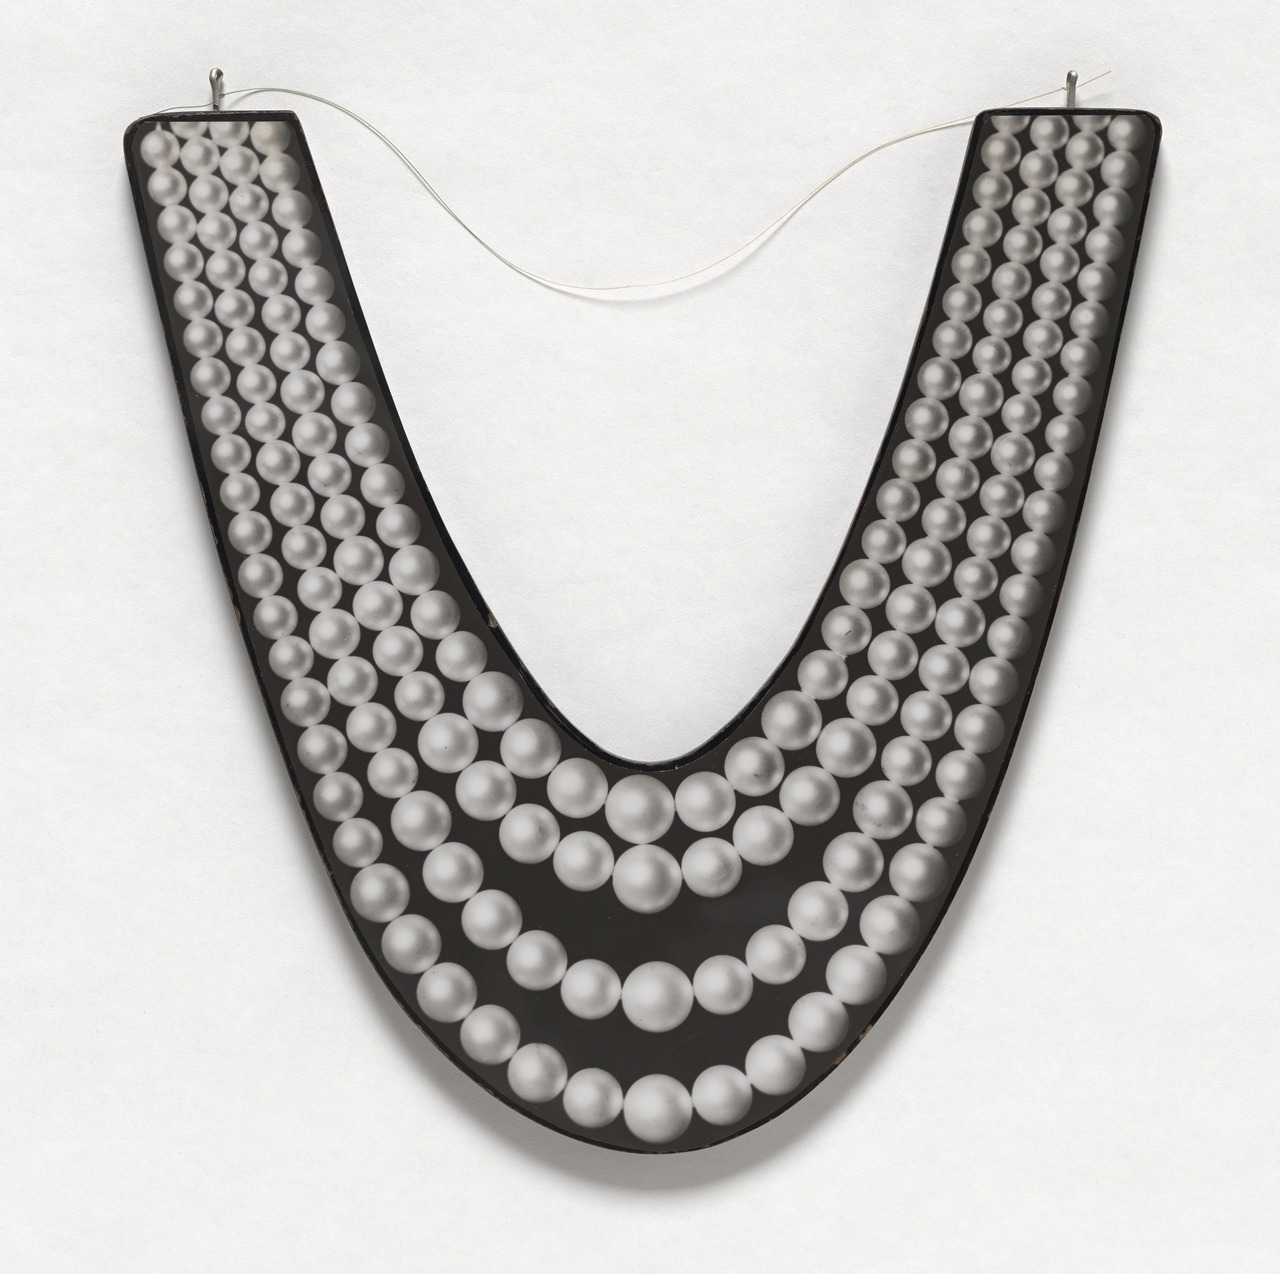 robert_watts_pearl_necklace_moma.jpg